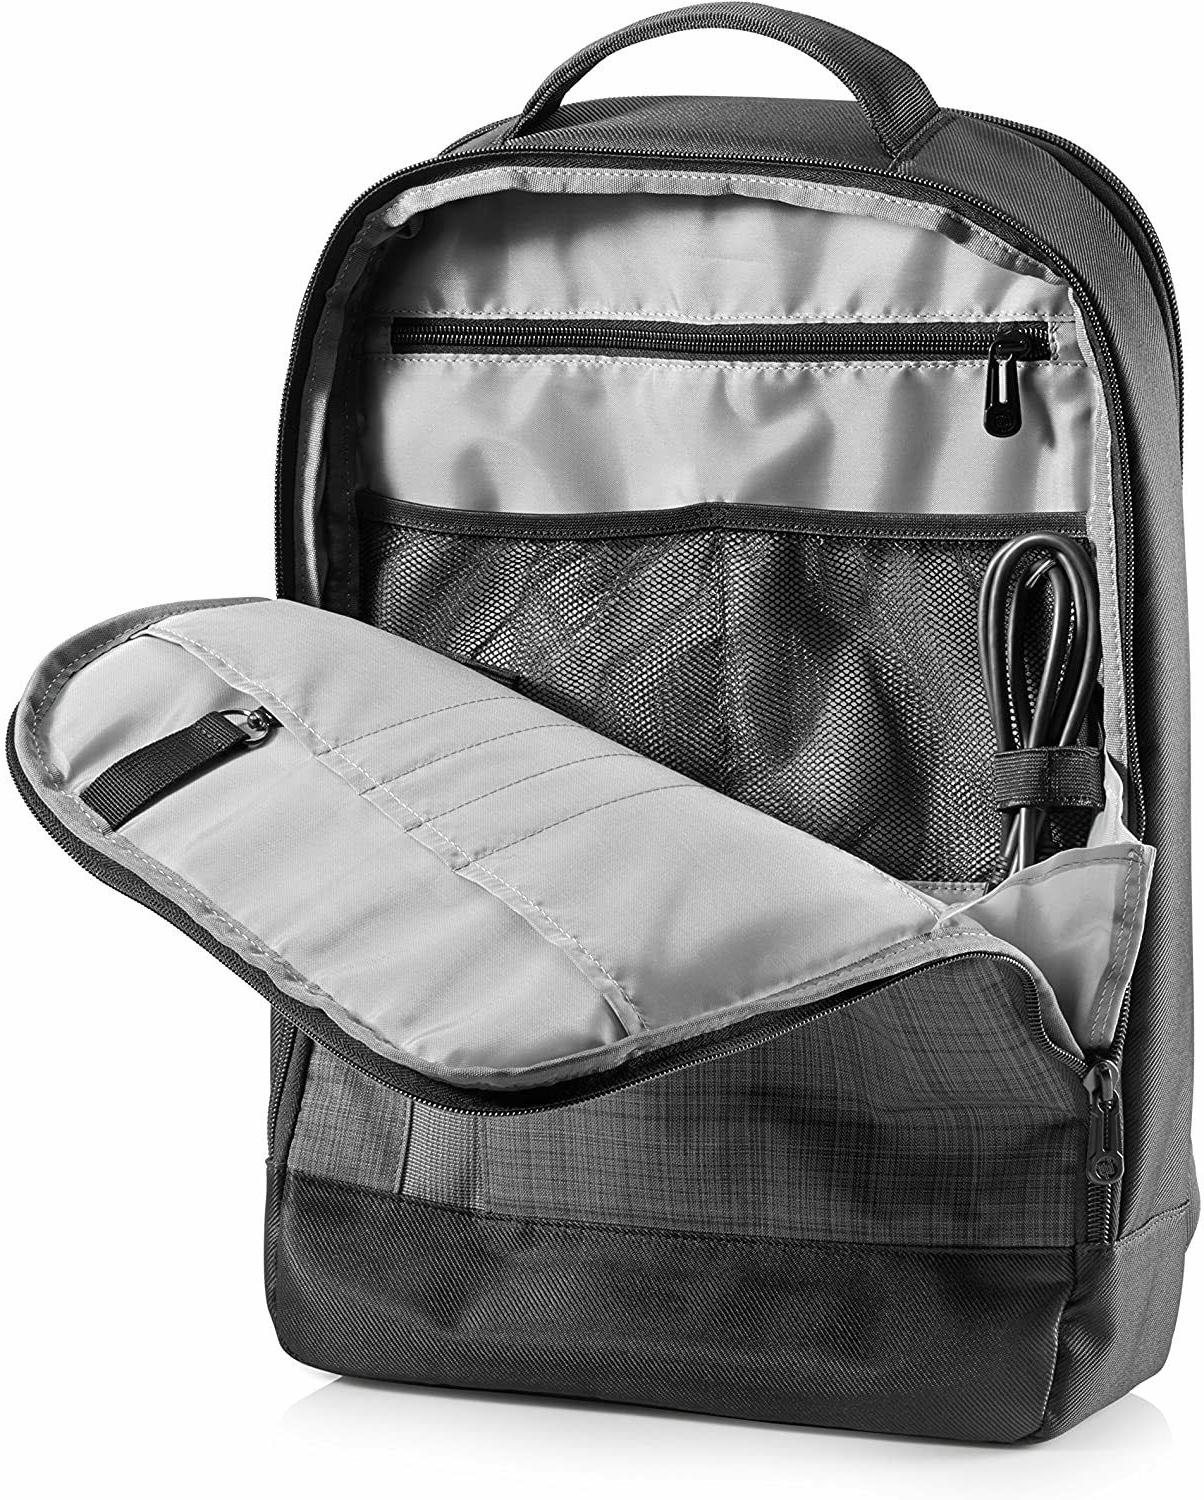 new slim ultrabook laptop carrying case backpack